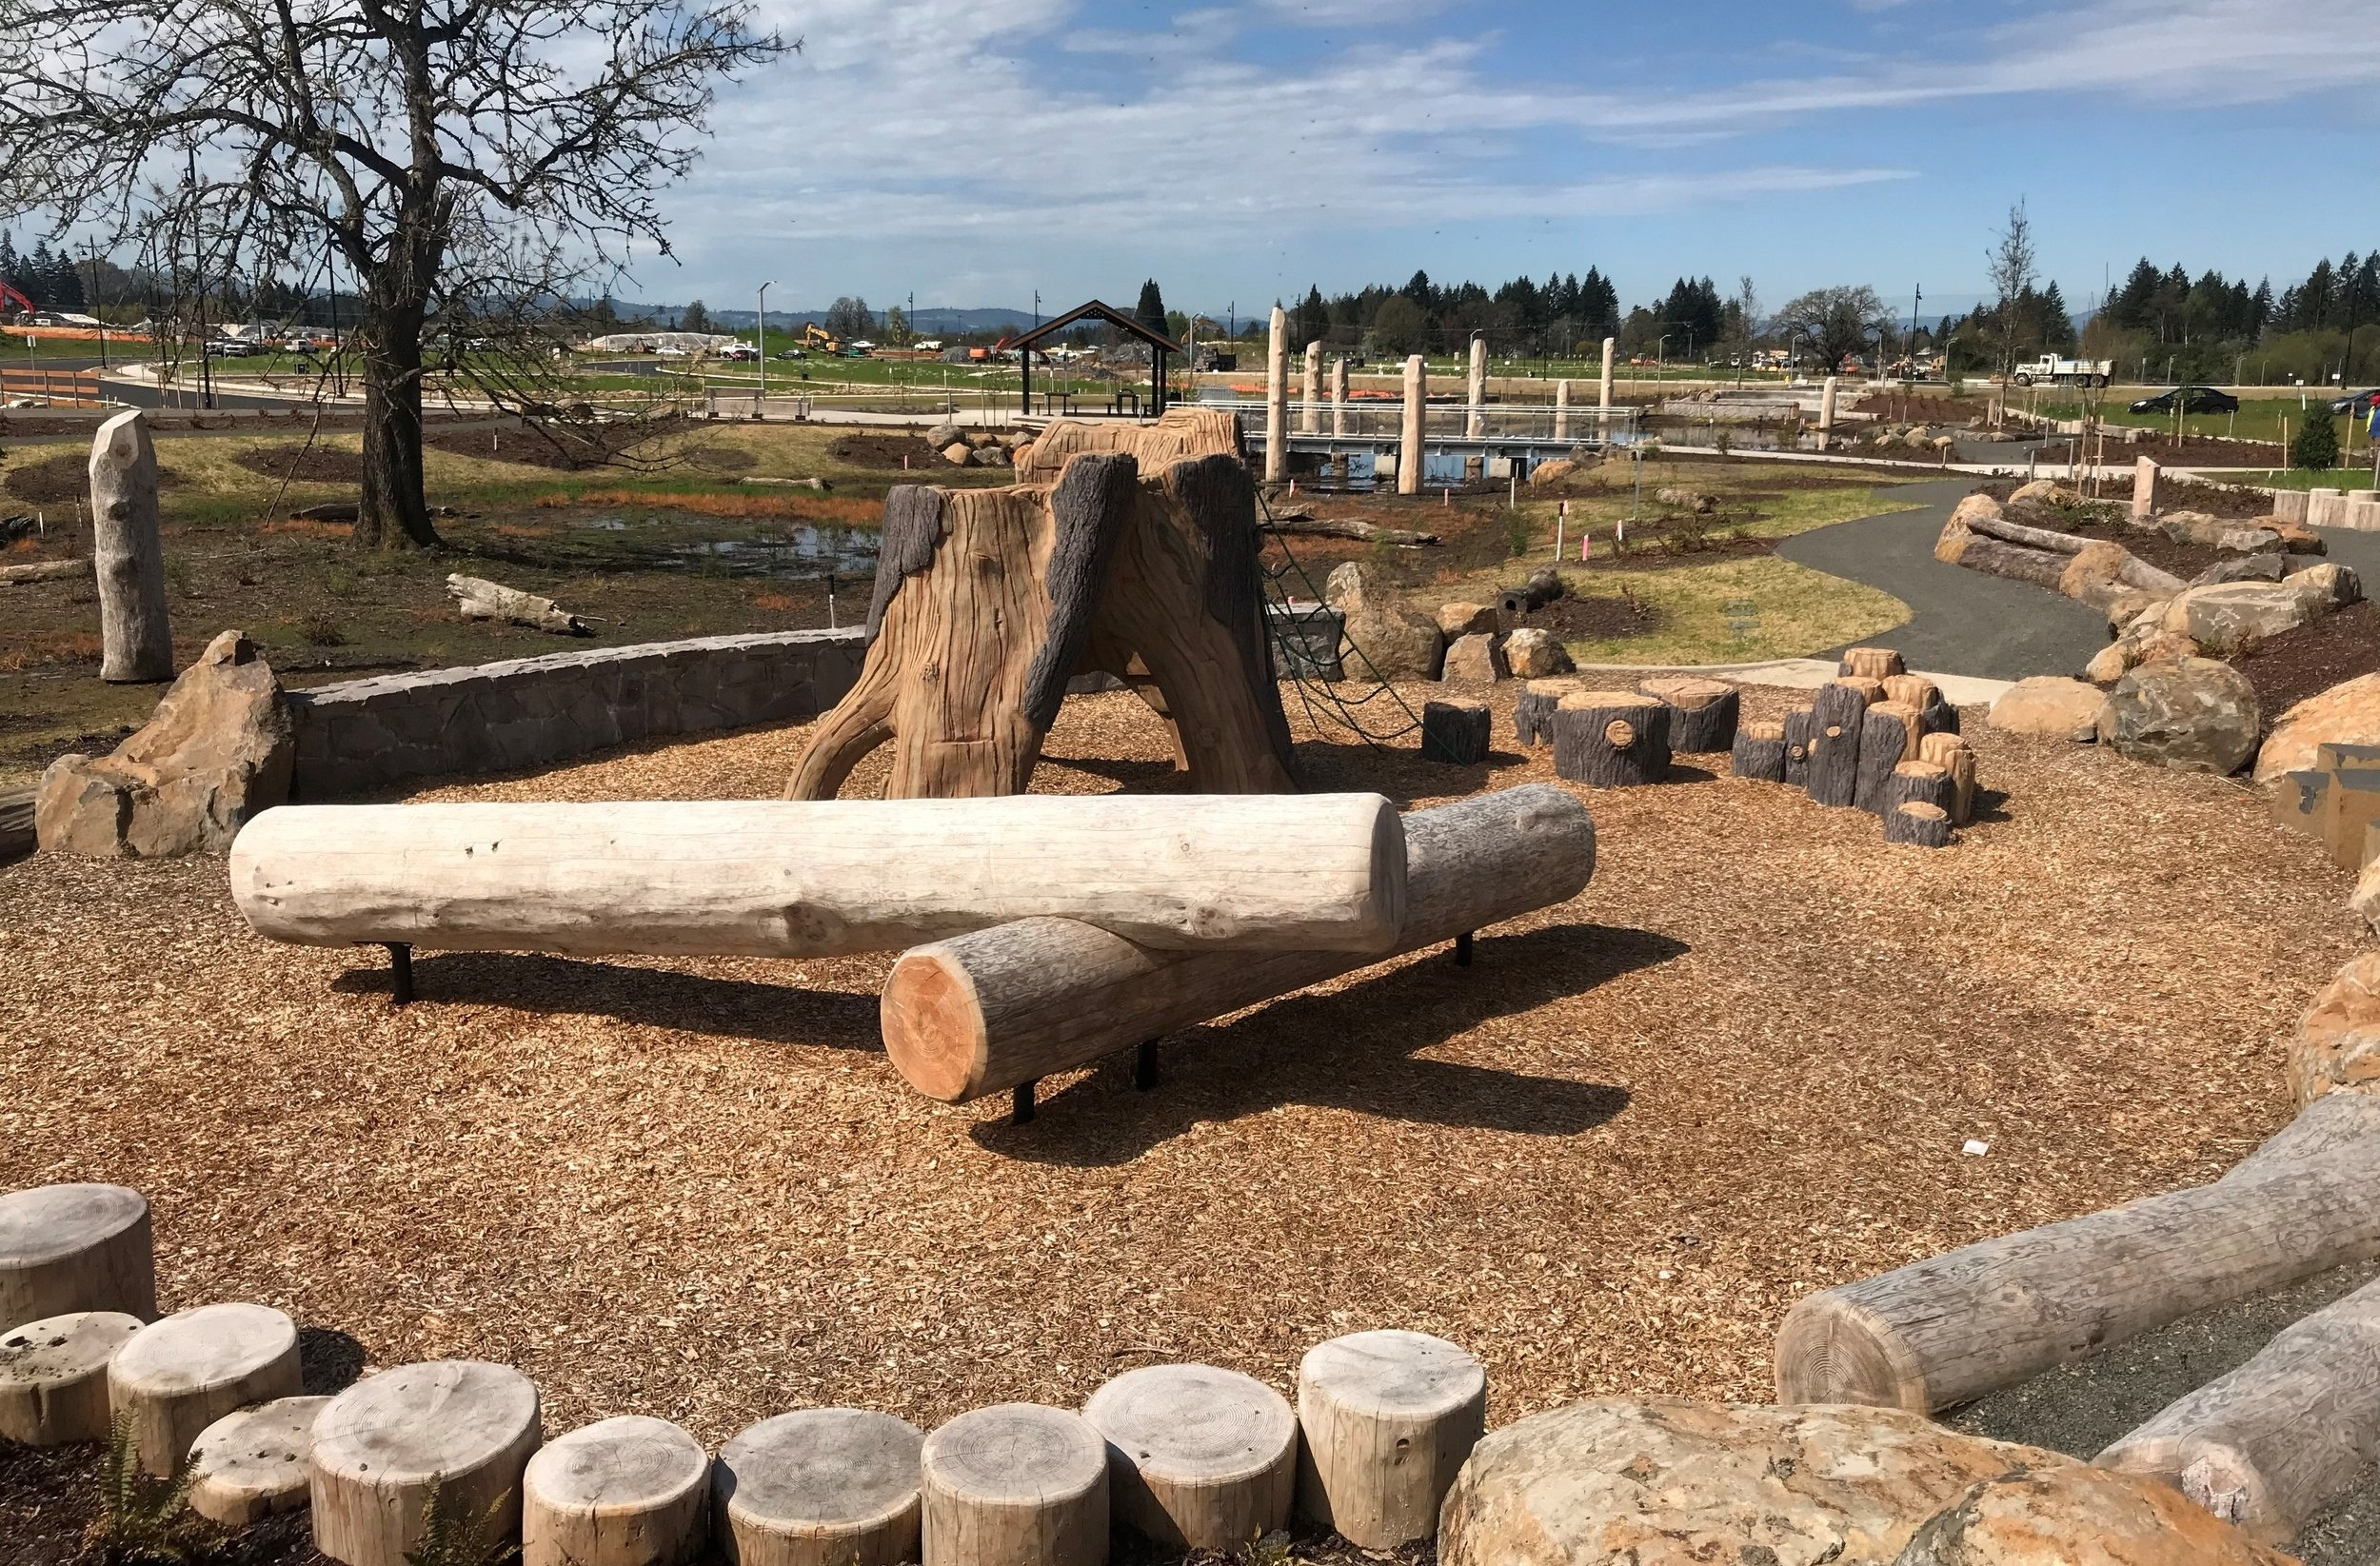 Logs and stumps in wood chips make a natural play area on a sunny day